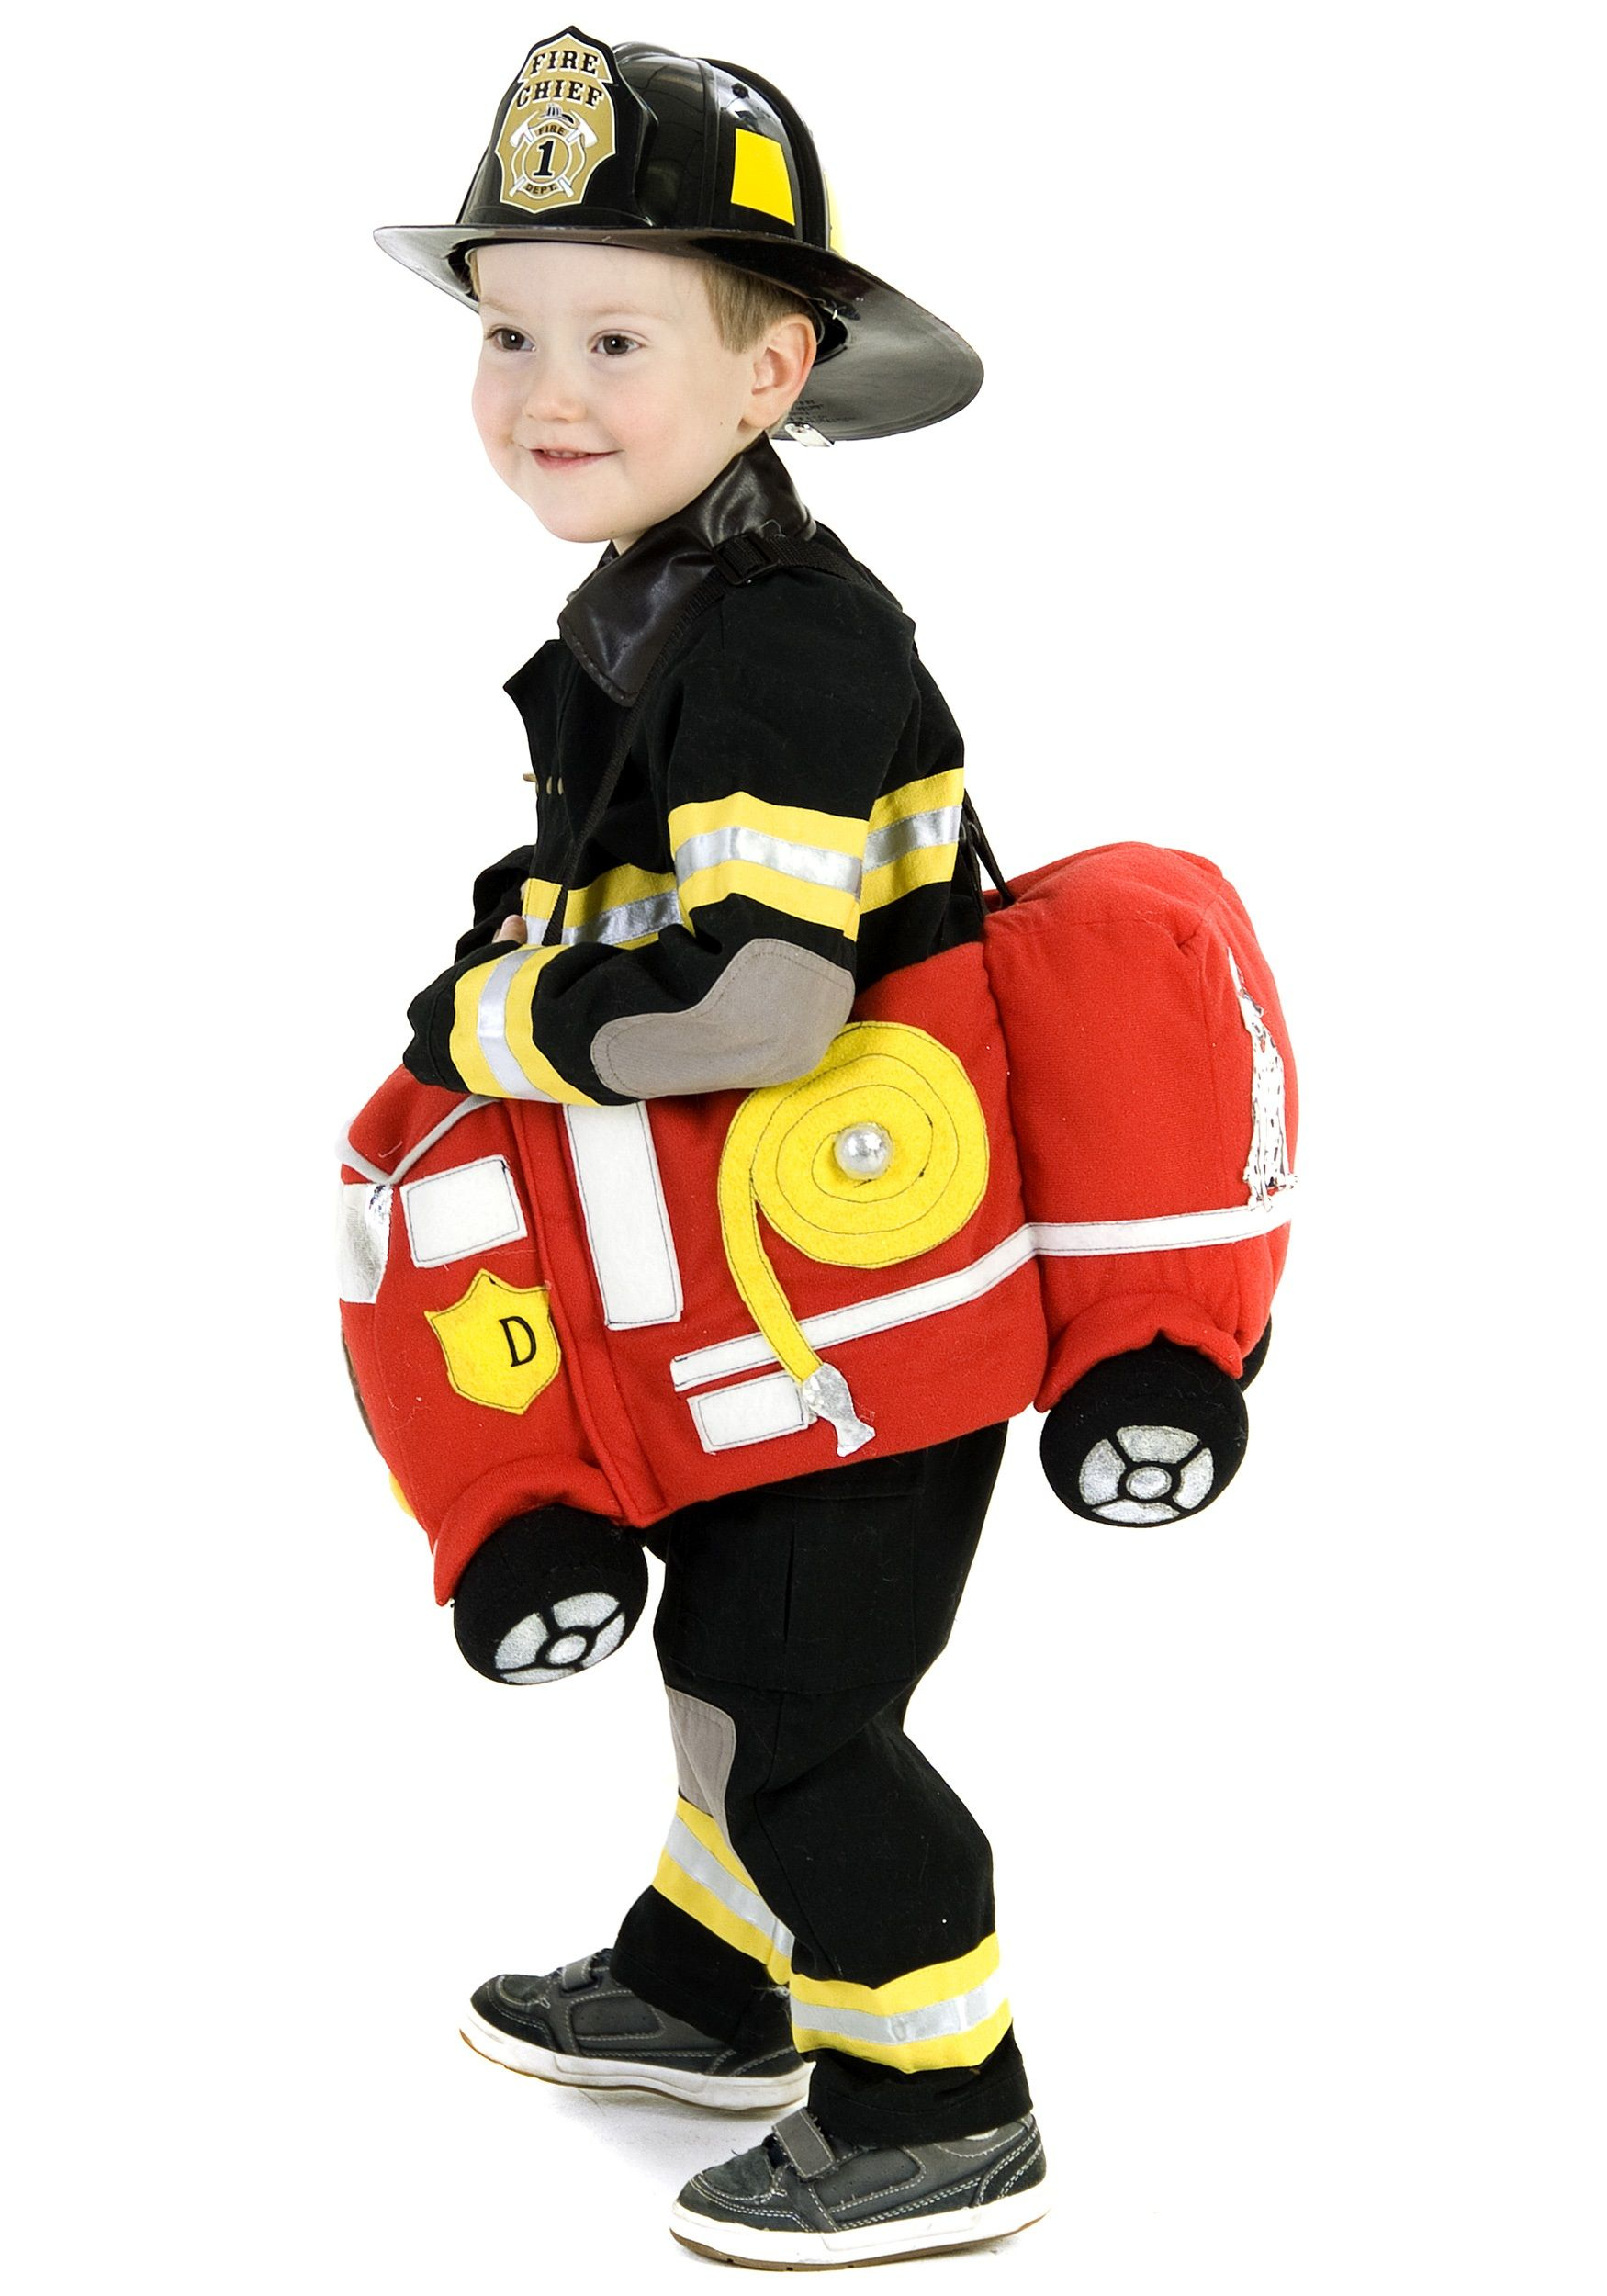 Ride in a Fire Truck Costume | Baby Halloween Costumes | Pinterest ...